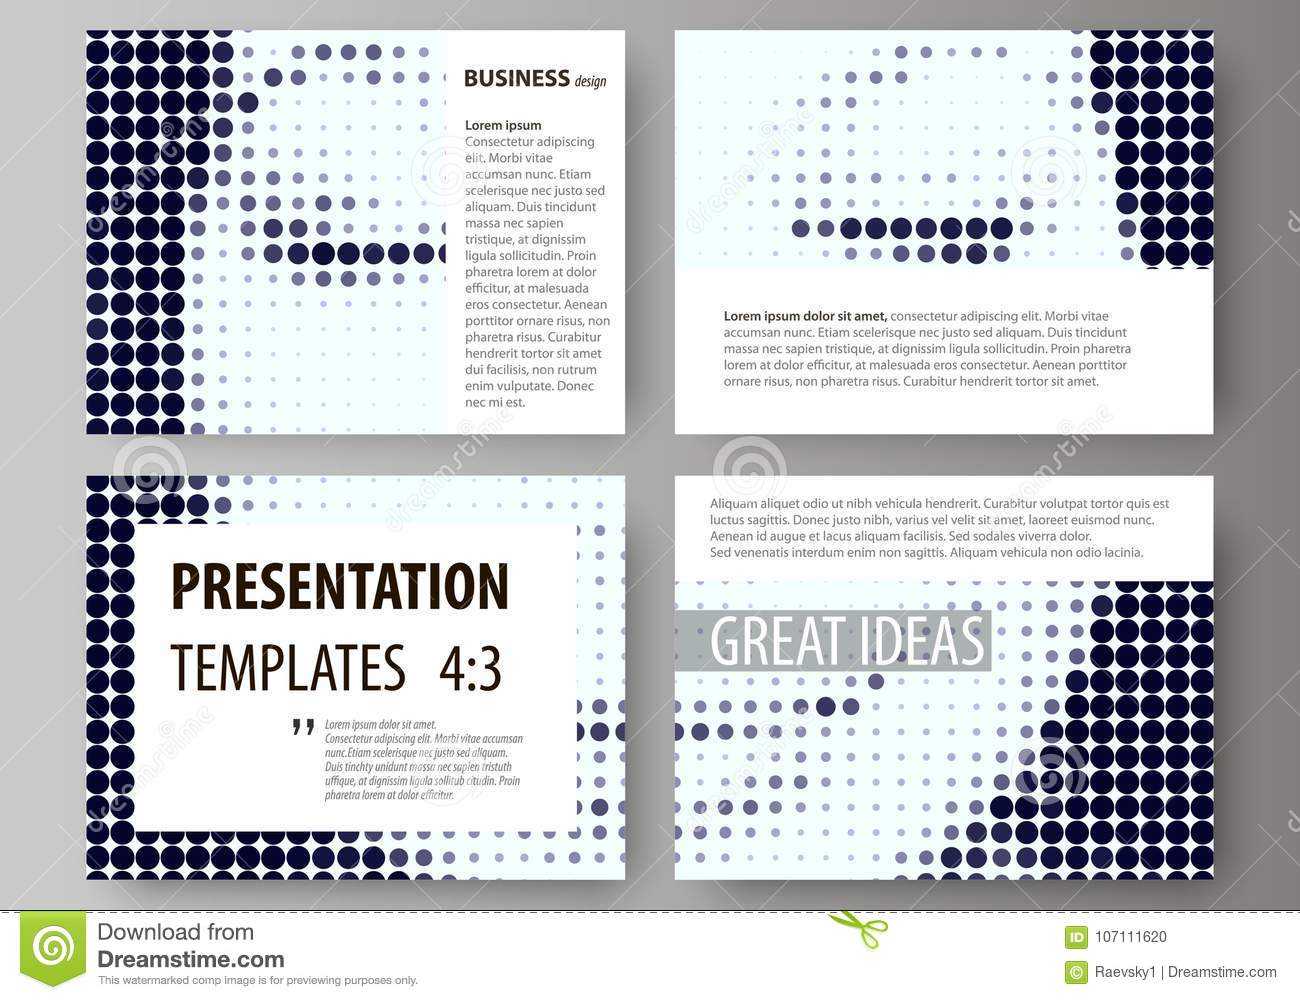 e1b021a2a1b92 Set of business templates for presentation slides. Easy editable abstract  vector layouts in flat design. Halftone dotted background